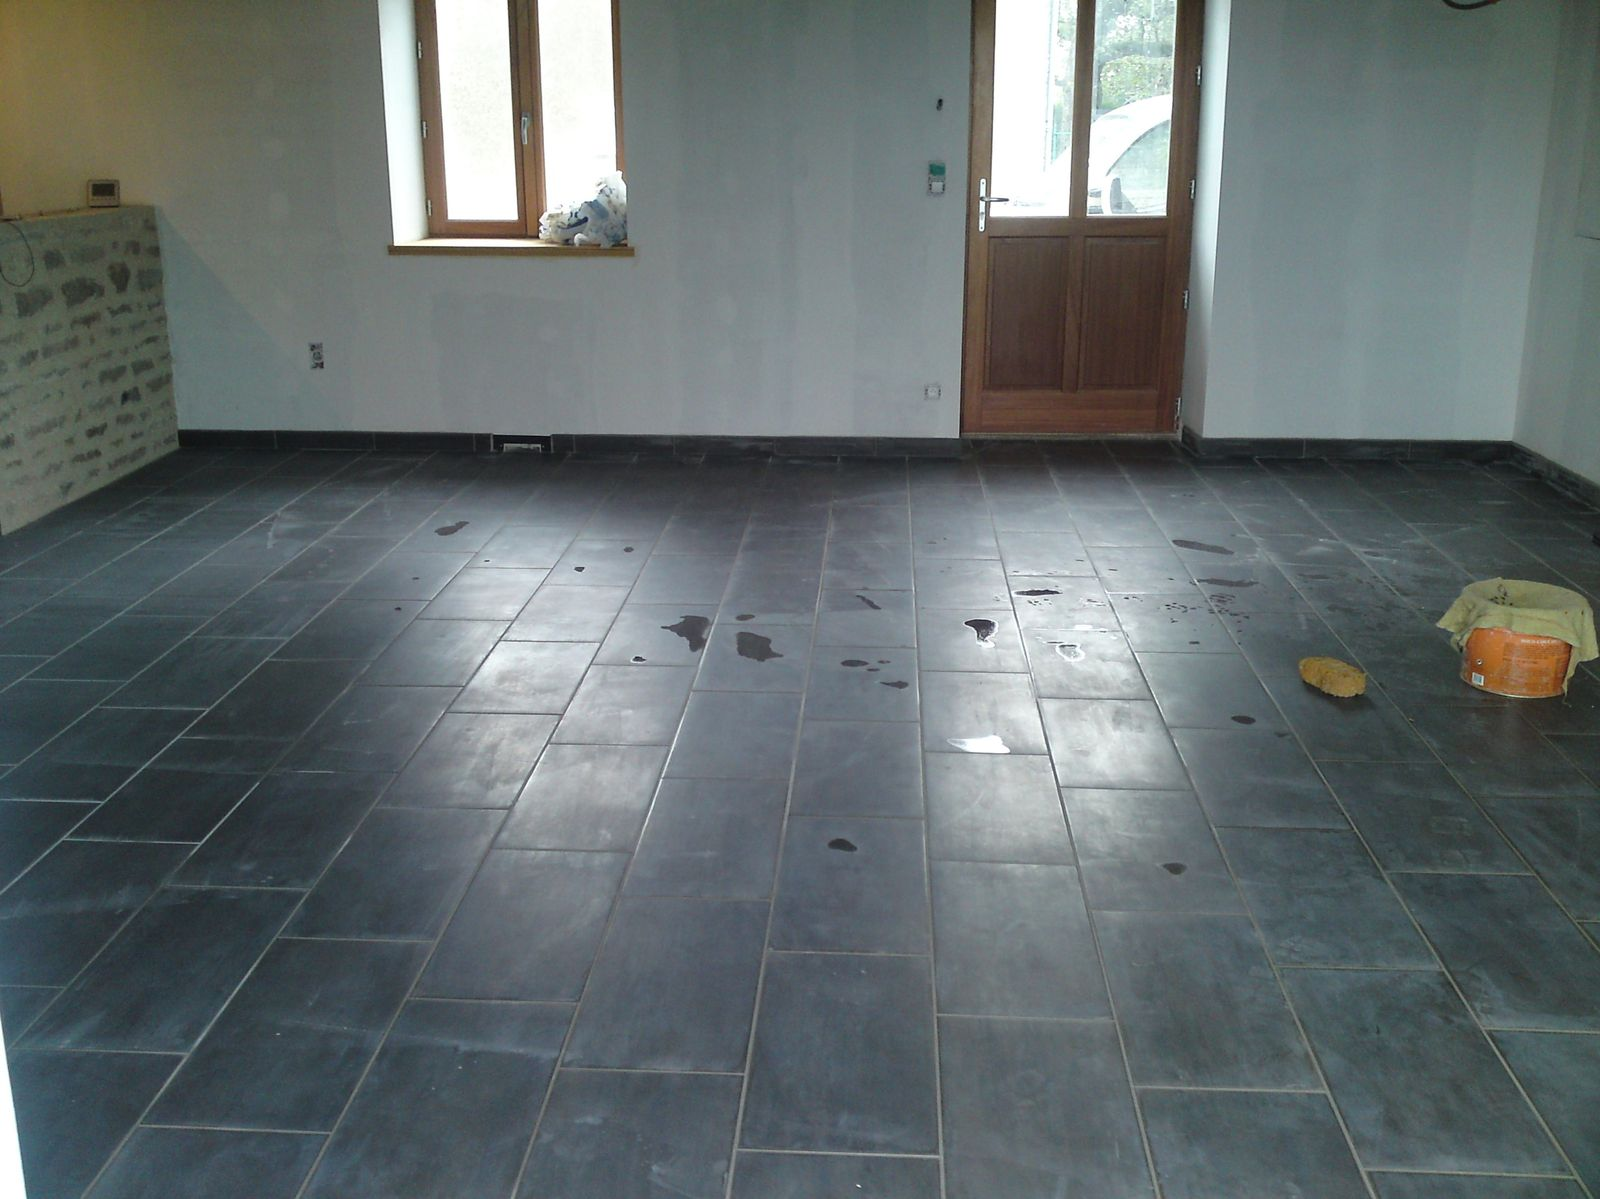 Joints de carrelage renovation d 39 une fermette en bourgogne for Etancheifier joint carrelage